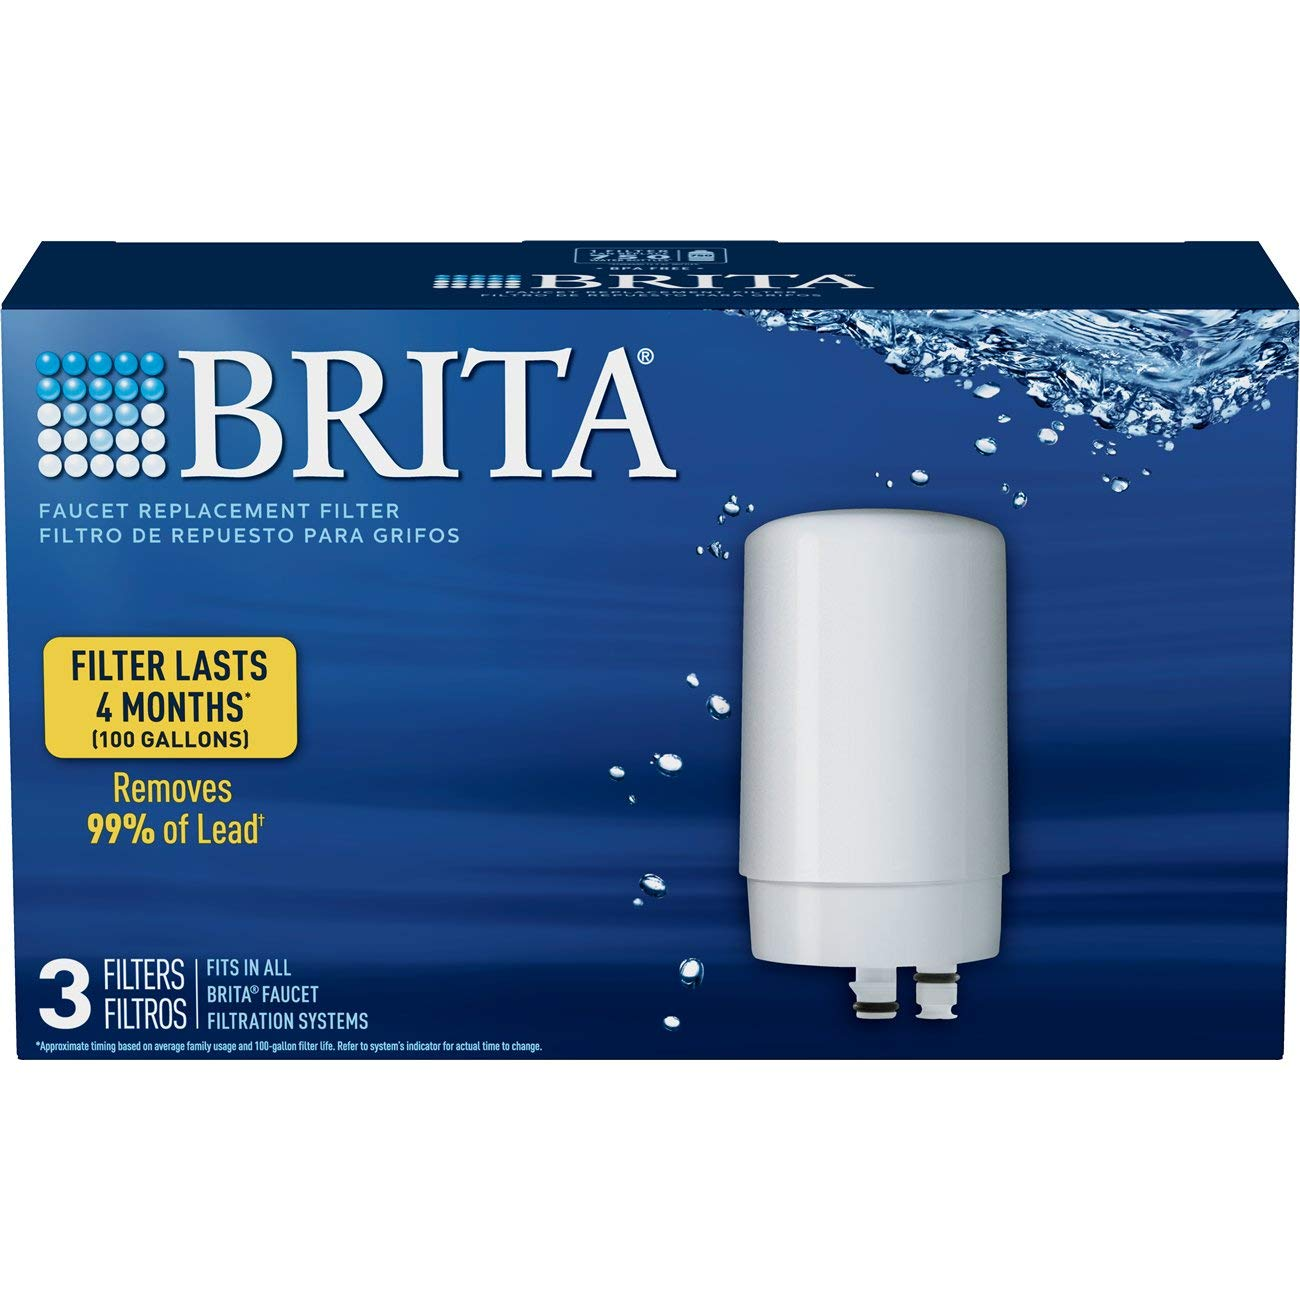 Brita 36313 Faucet Replacement Filters, 3ct, WHITE by Brita (Image #2)